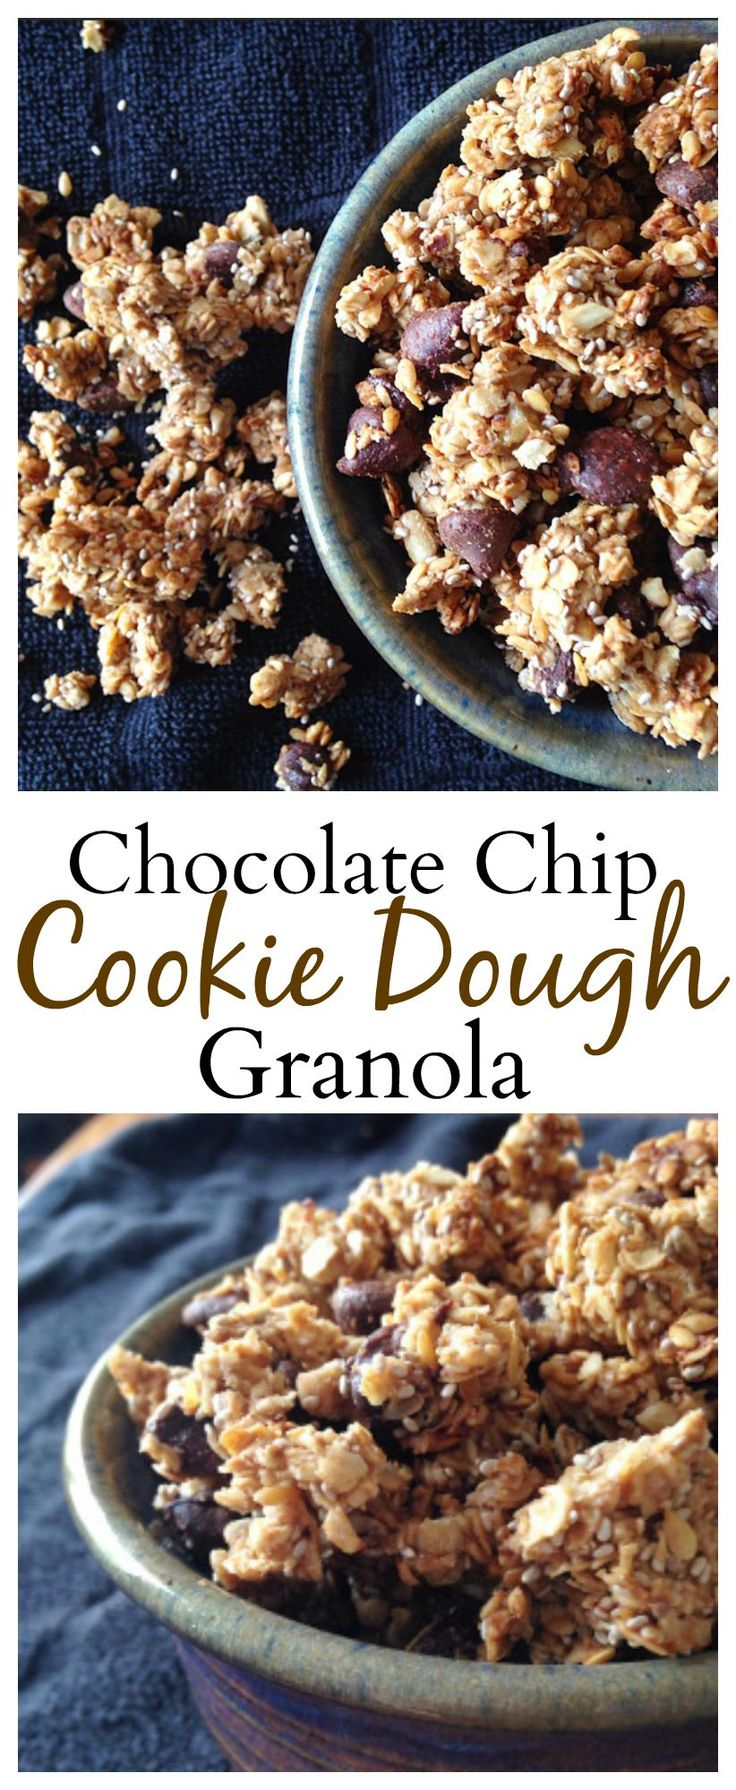 #healthy Chocolate Chip Cookie Dough Granola is the best granola you will ever taste! #vegan #glutenfree